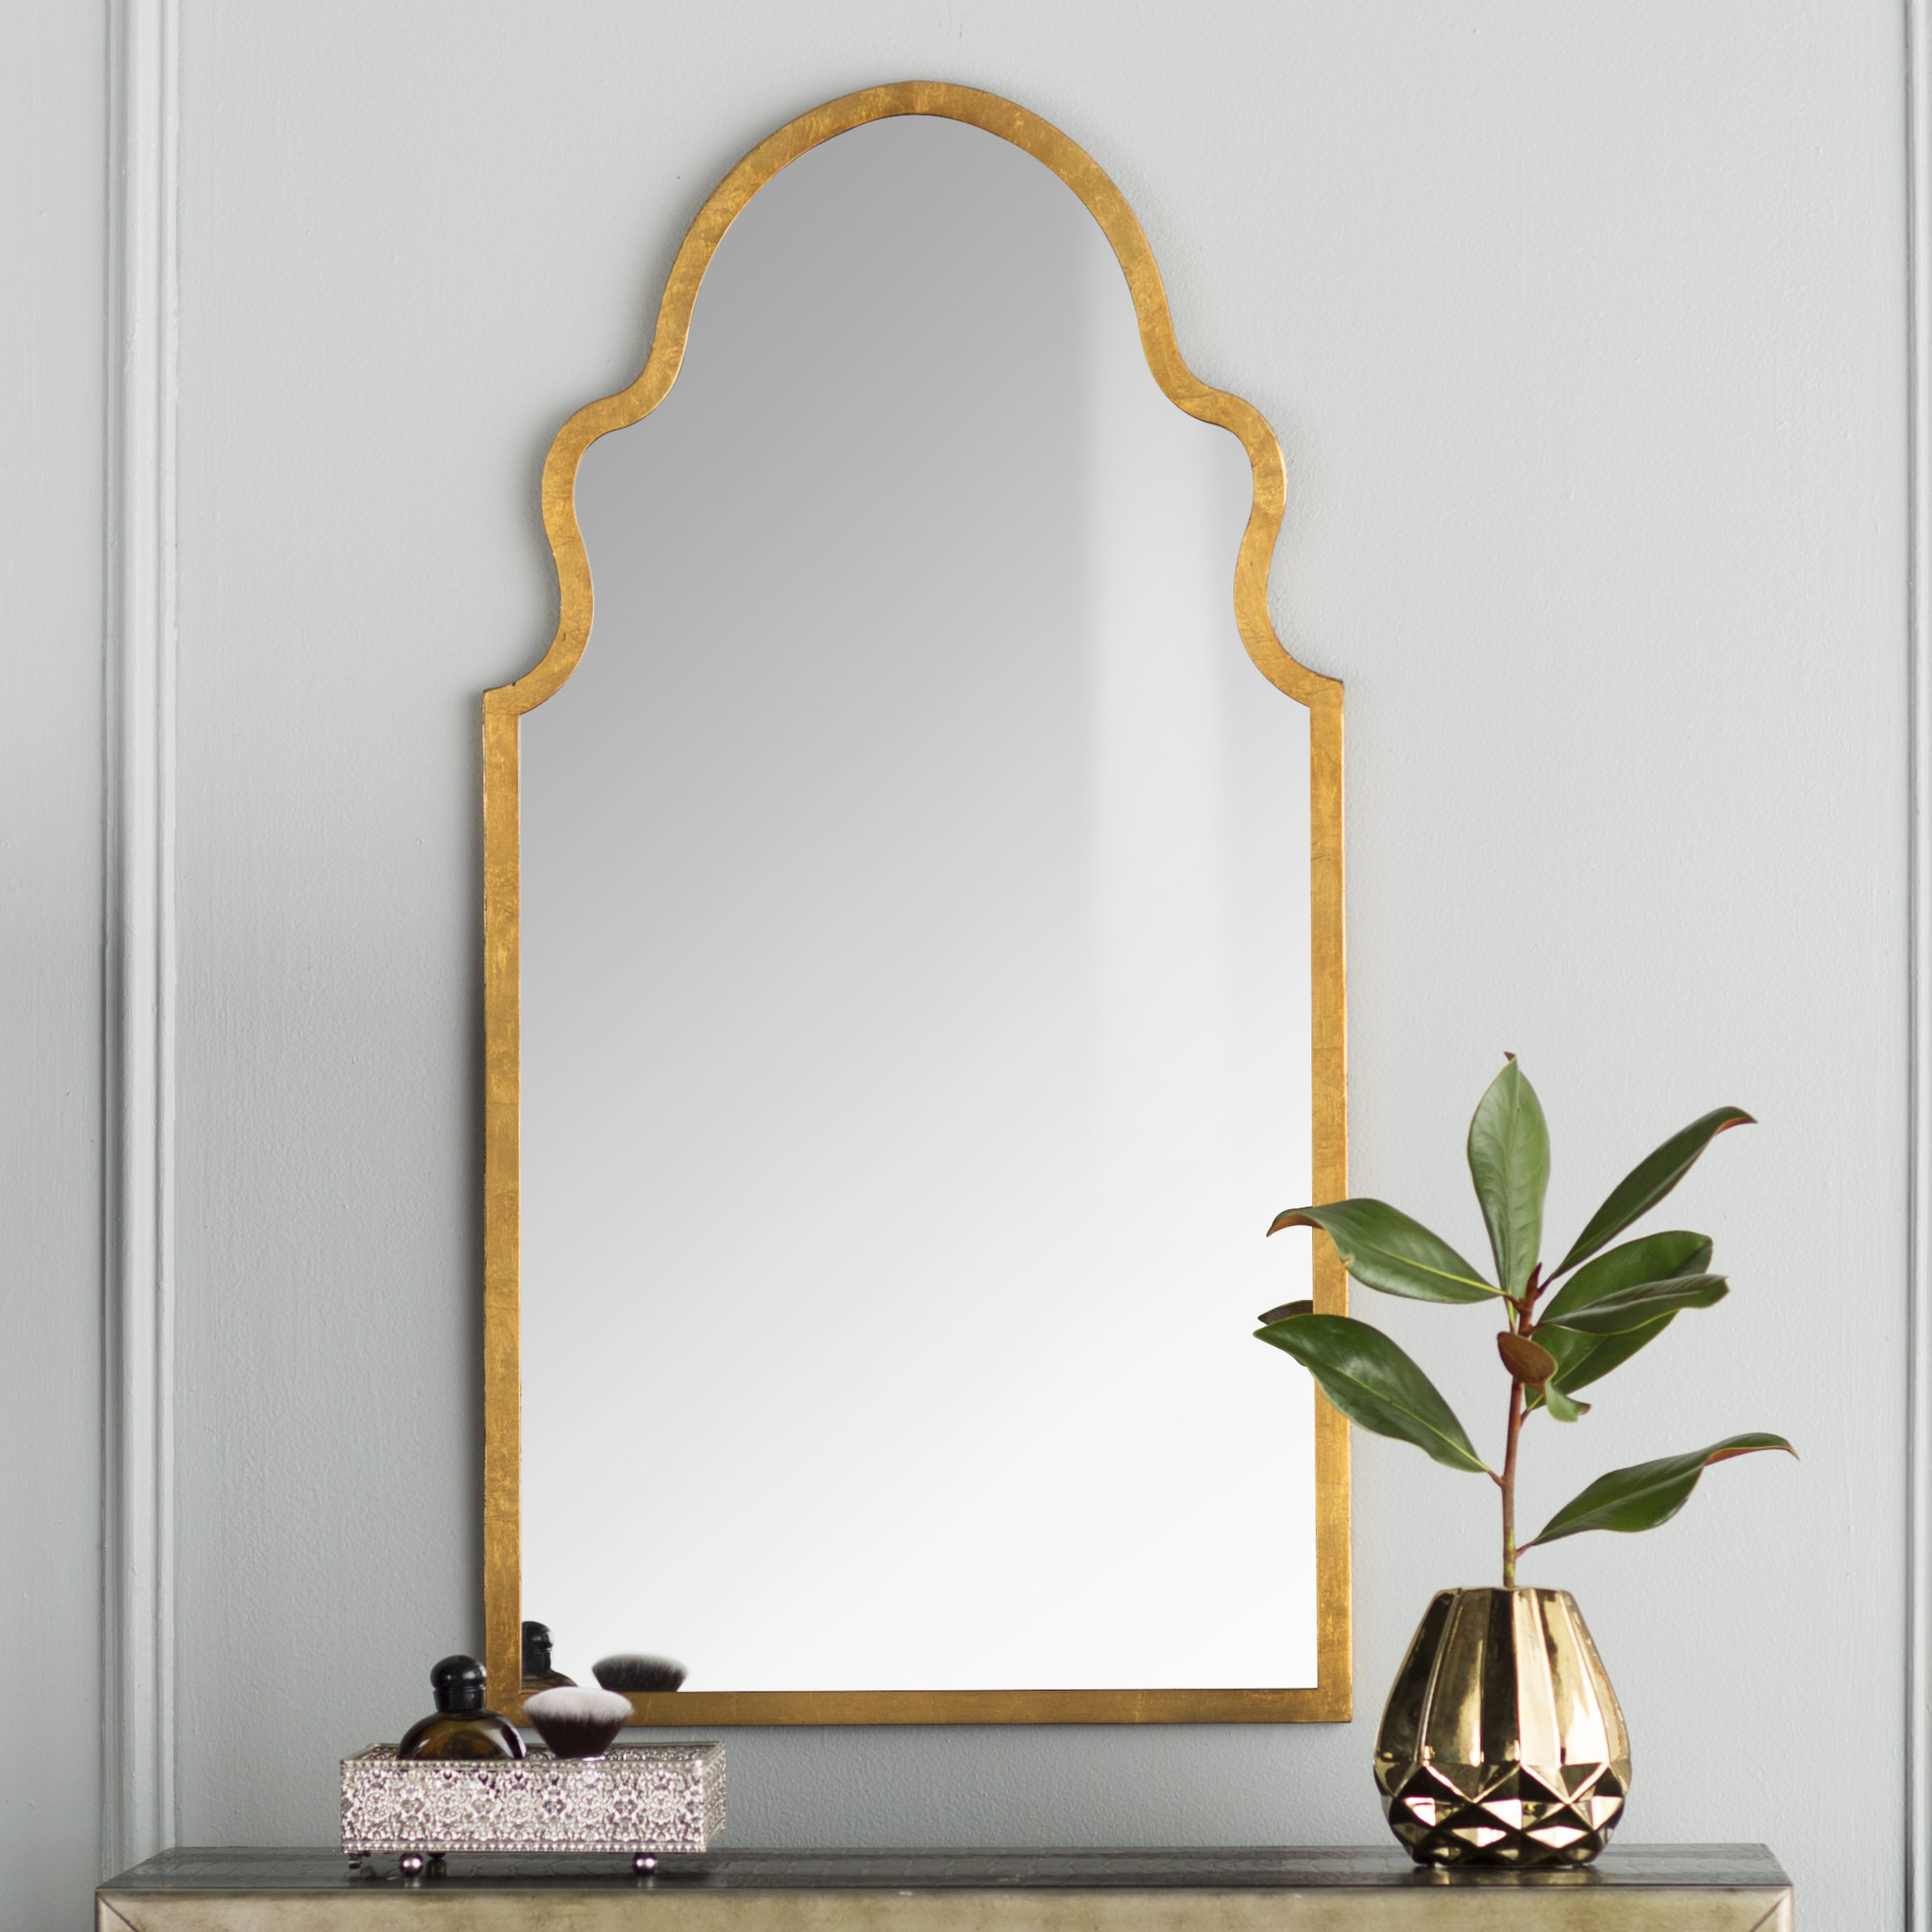 Moseley Accent Mirrors For Fashionable Lincoln Wall Mirror (View 15 of 20)